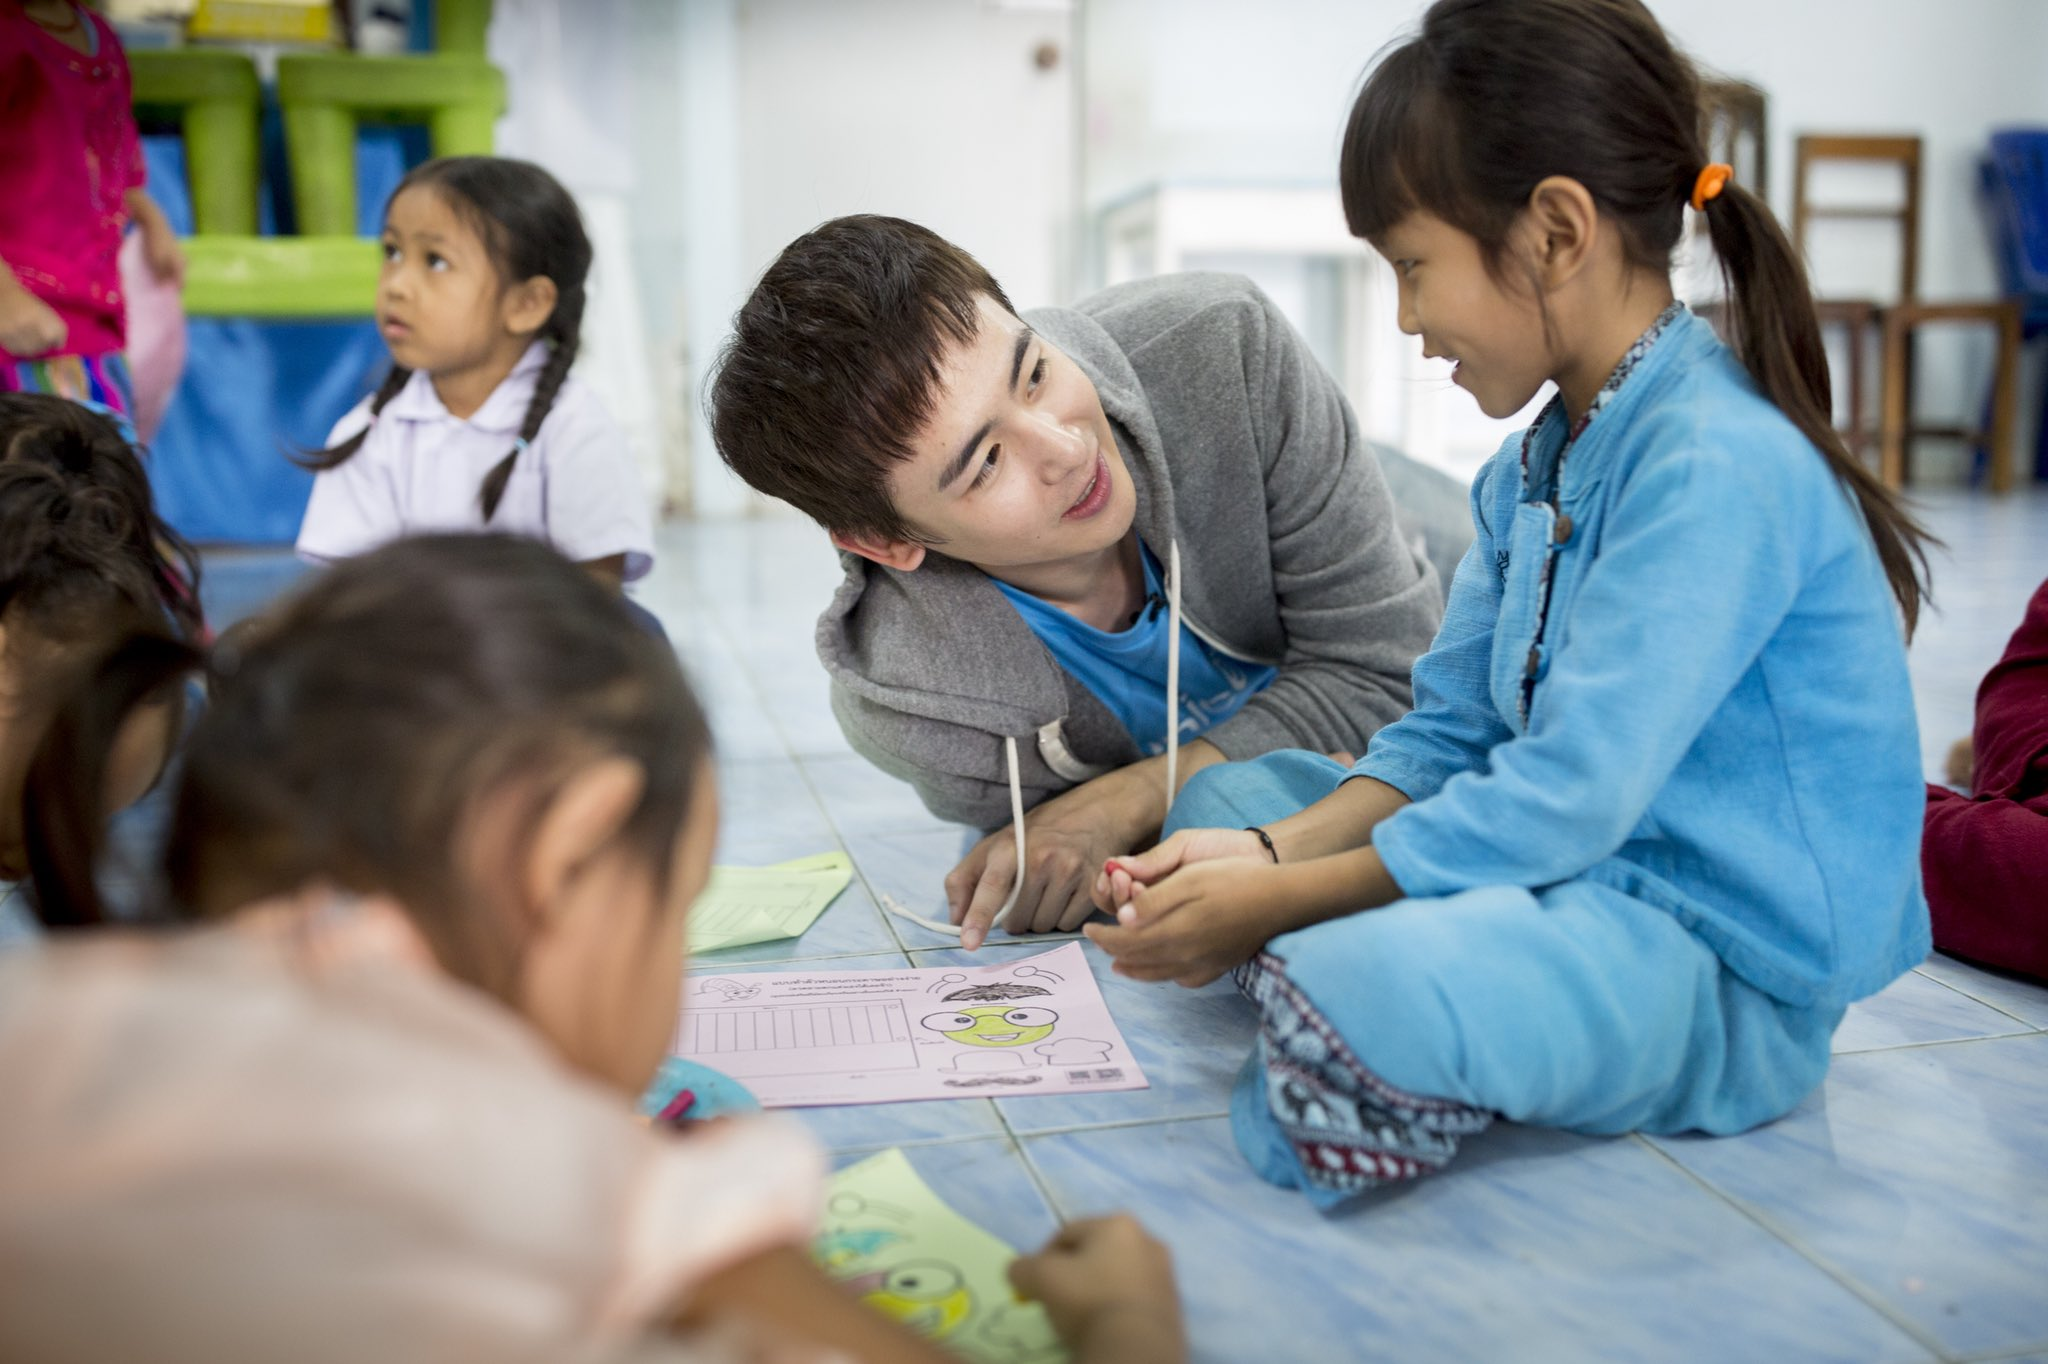 With me and @UNICEF_Thailand we all can make a difference by giving children in need an opportunity they deserve. https://t.co/6vrSSk1fwi